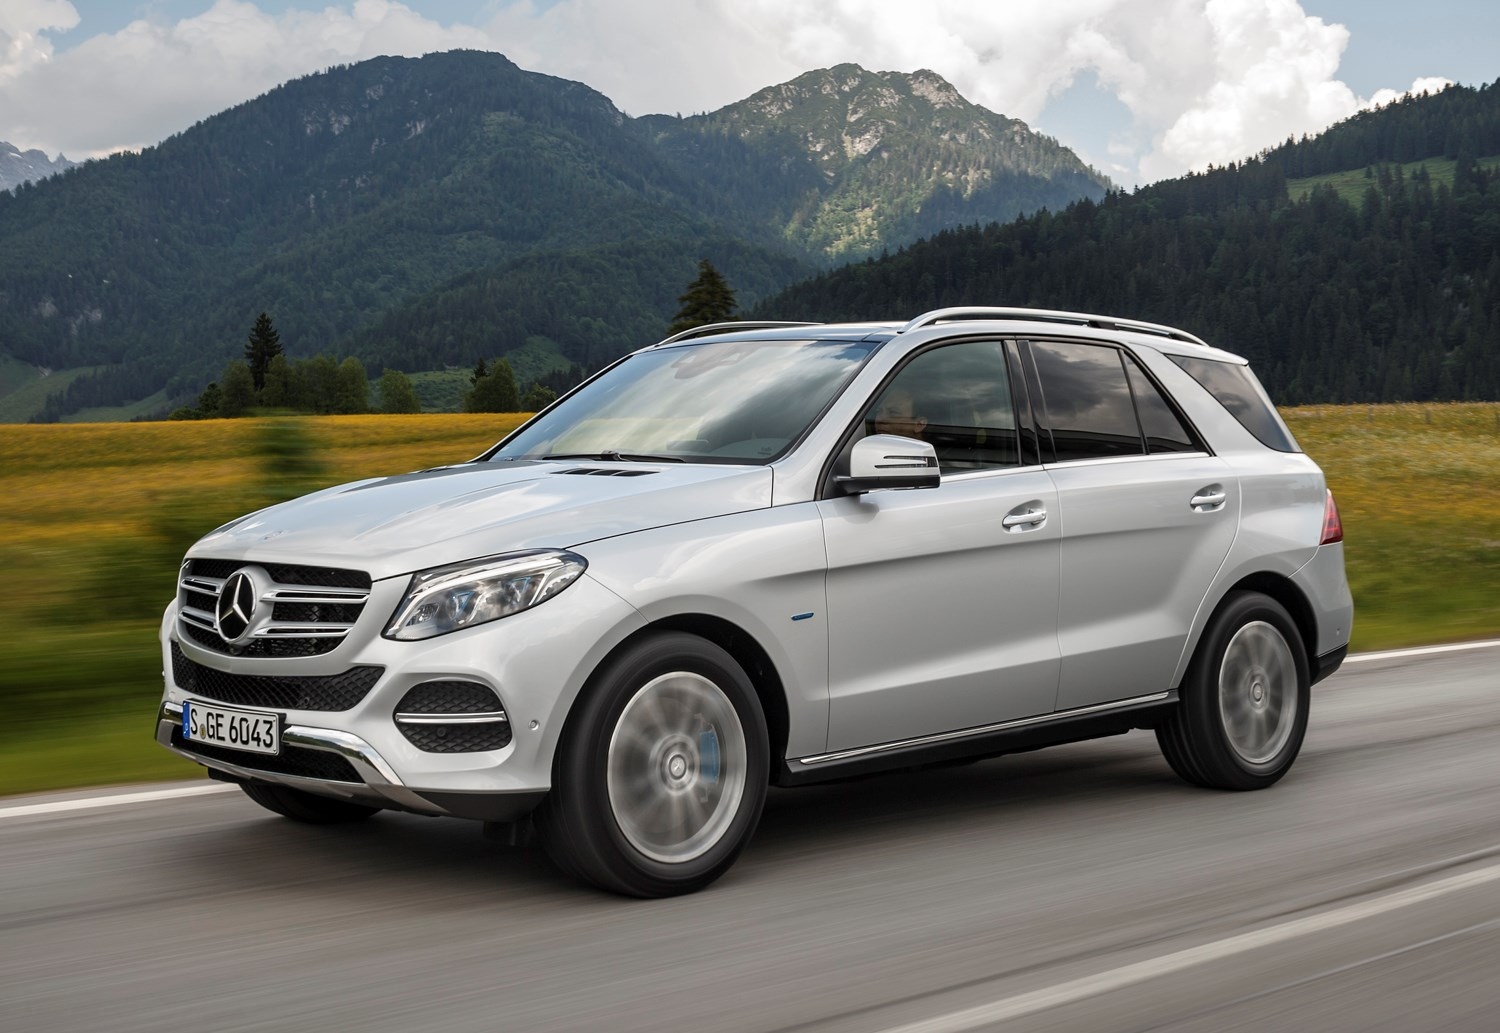 Mercedes Gle 350 4matic >> Mercedes-Benz GLE-Class 4x4 (2015 - ) Photos | Parkers